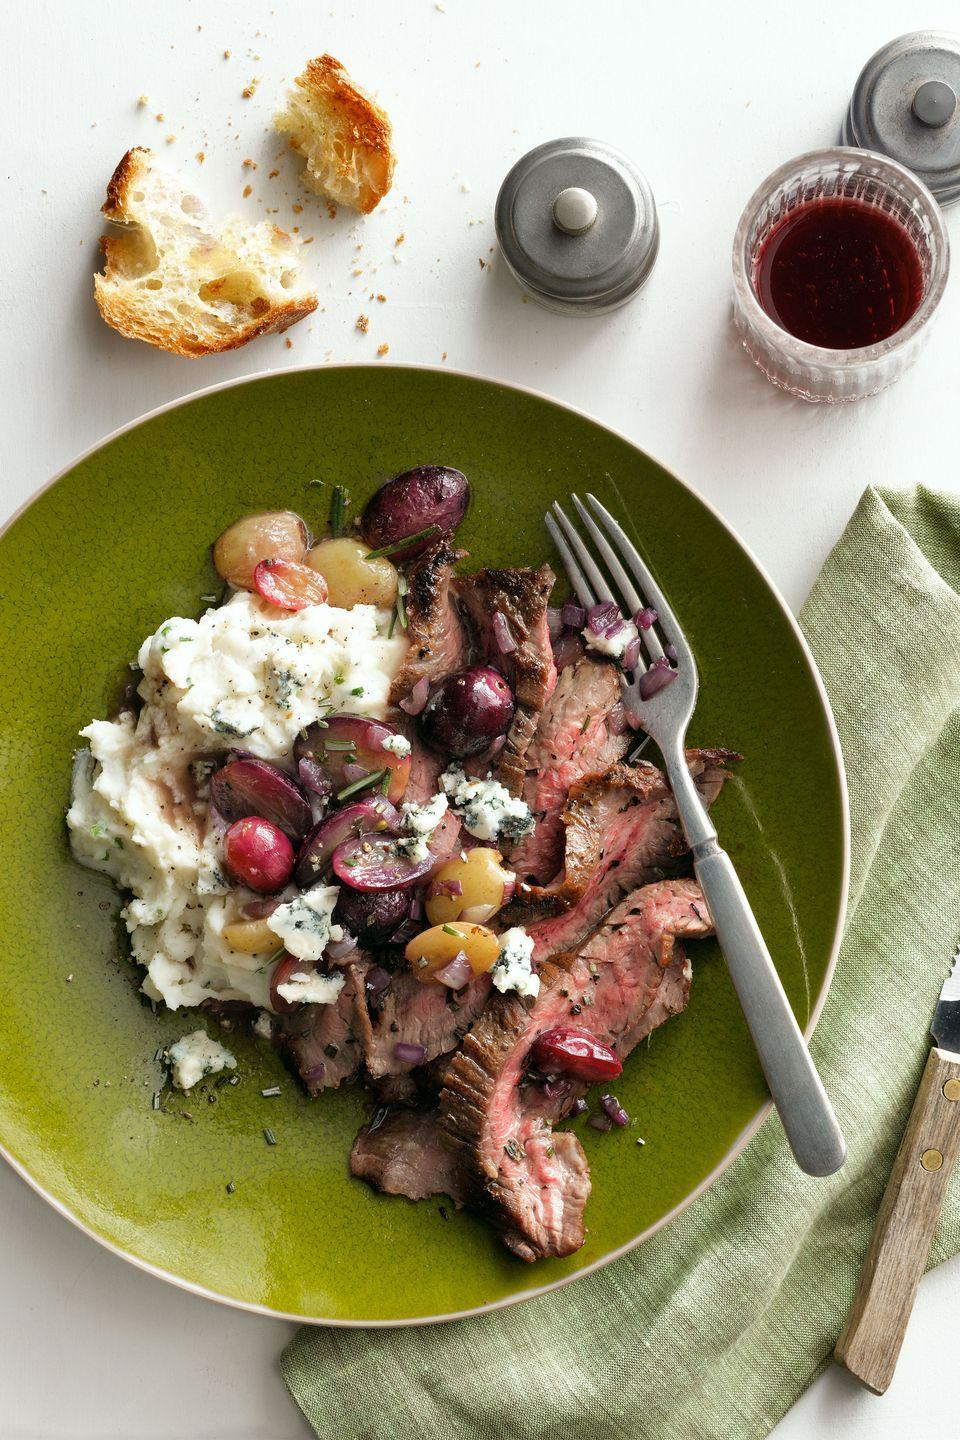 """<p>A quick and easy flank steak gets acidity from roasted grapes in this easy, weeknight recipe.</p><p><strong><a href=""""https://www.countryliving.com/food-drinks/recipes/a5748/herb-garlic-crusted-flank-steak-with-pan-roasted-grapes-recipe-clx0914/"""" rel=""""nofollow noopener"""" target=""""_blank"""" data-ylk=""""slk:Get the recipe"""" class=""""link rapid-noclick-resp"""">Get the recipe</a>.</strong></p>"""